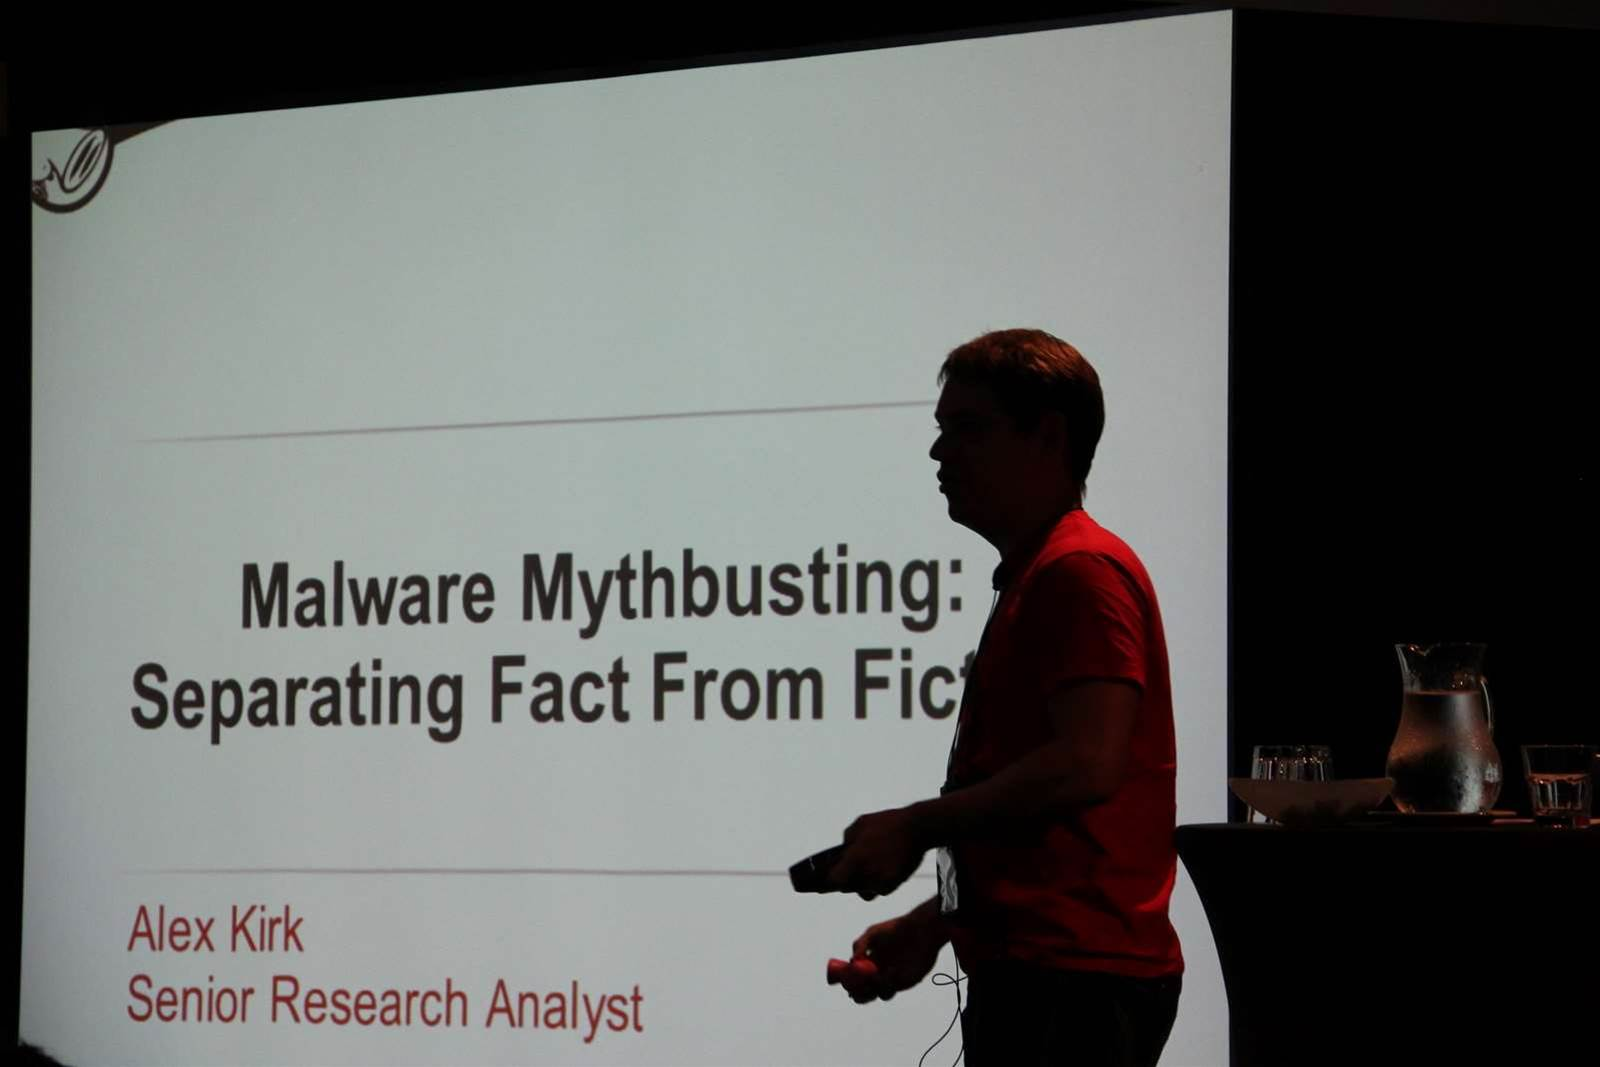 Malware myth-busting: Proliferation, perpetrators, and porn